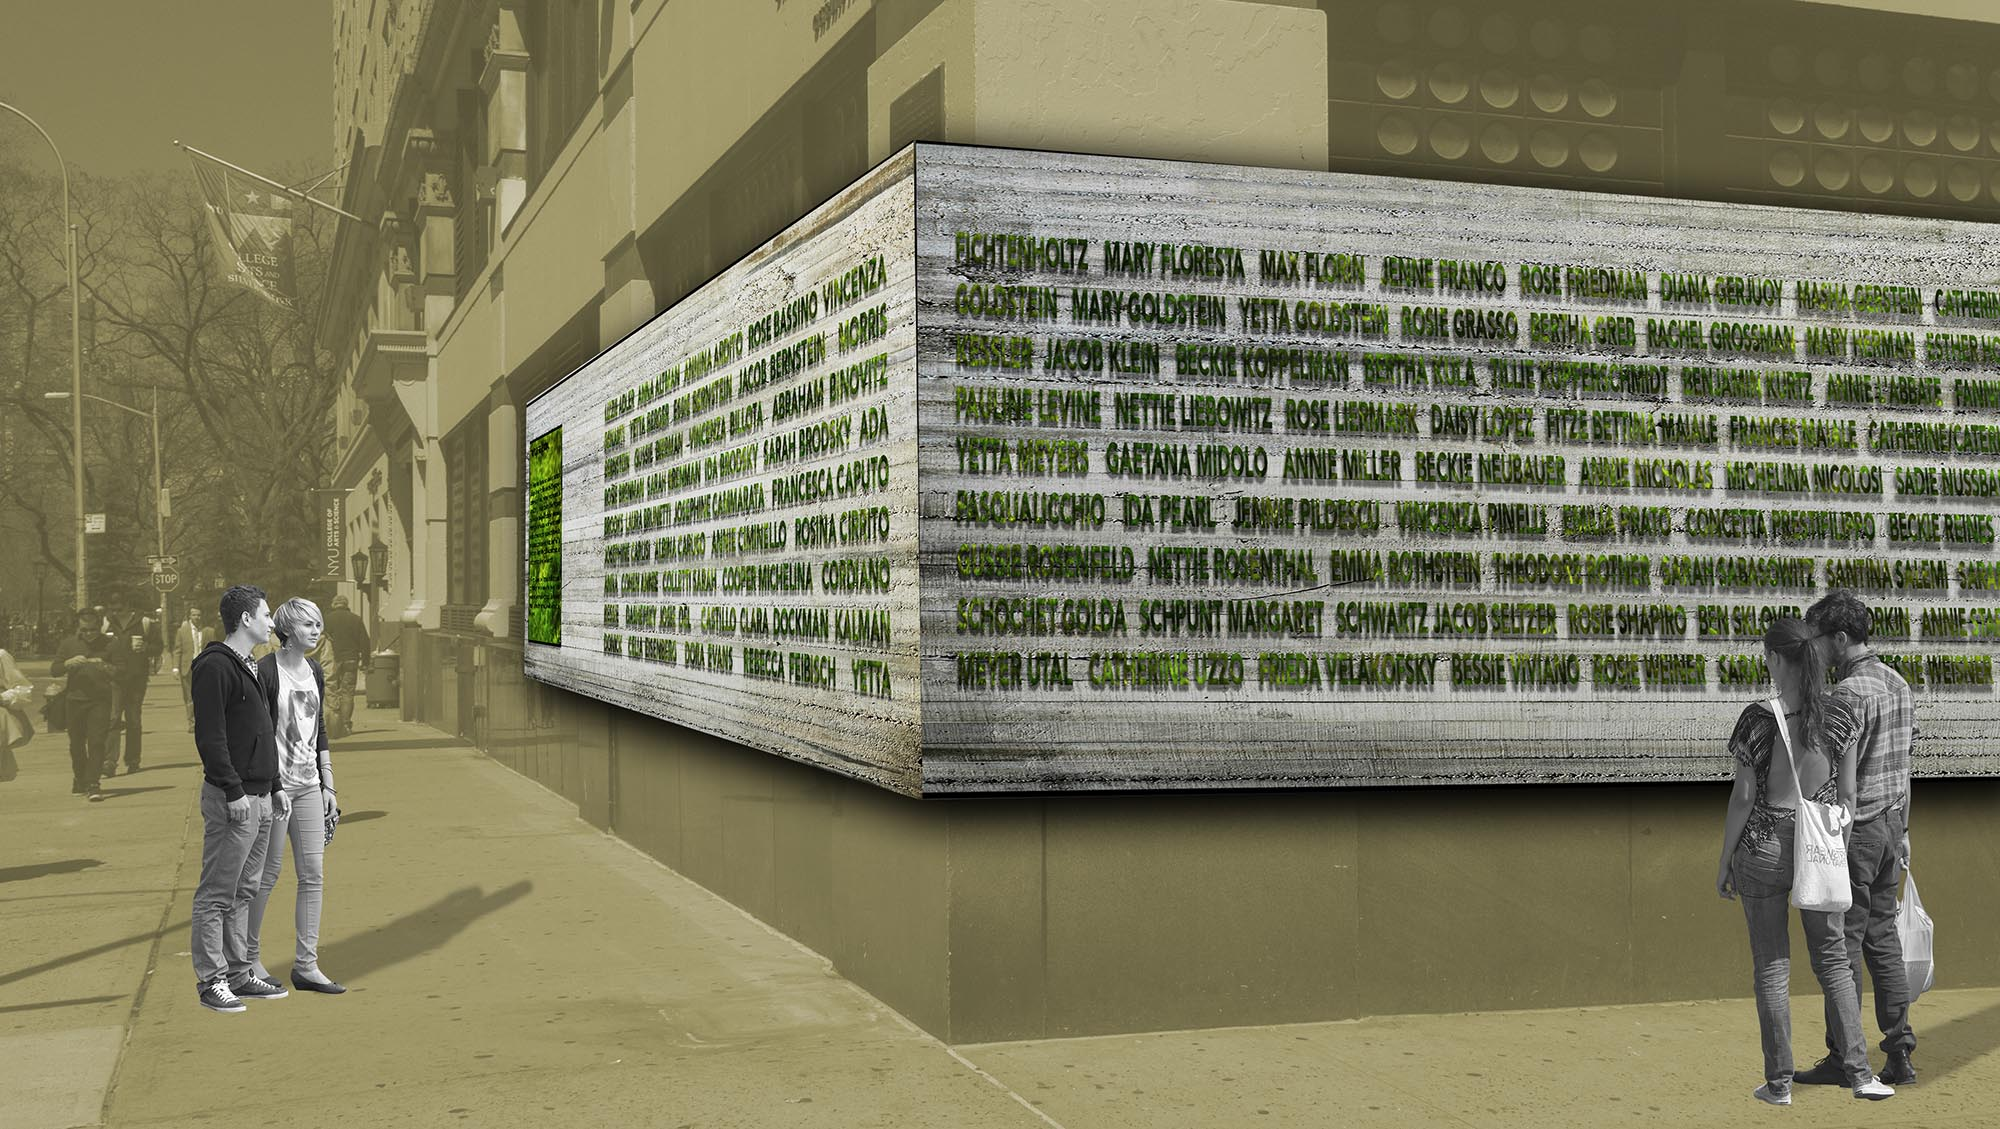 greenwall, green, vertical, planting, platns, moss, text, 3d, greenscape, landscape, triangle fire, boardway, NYU, brown building, avoid obvious